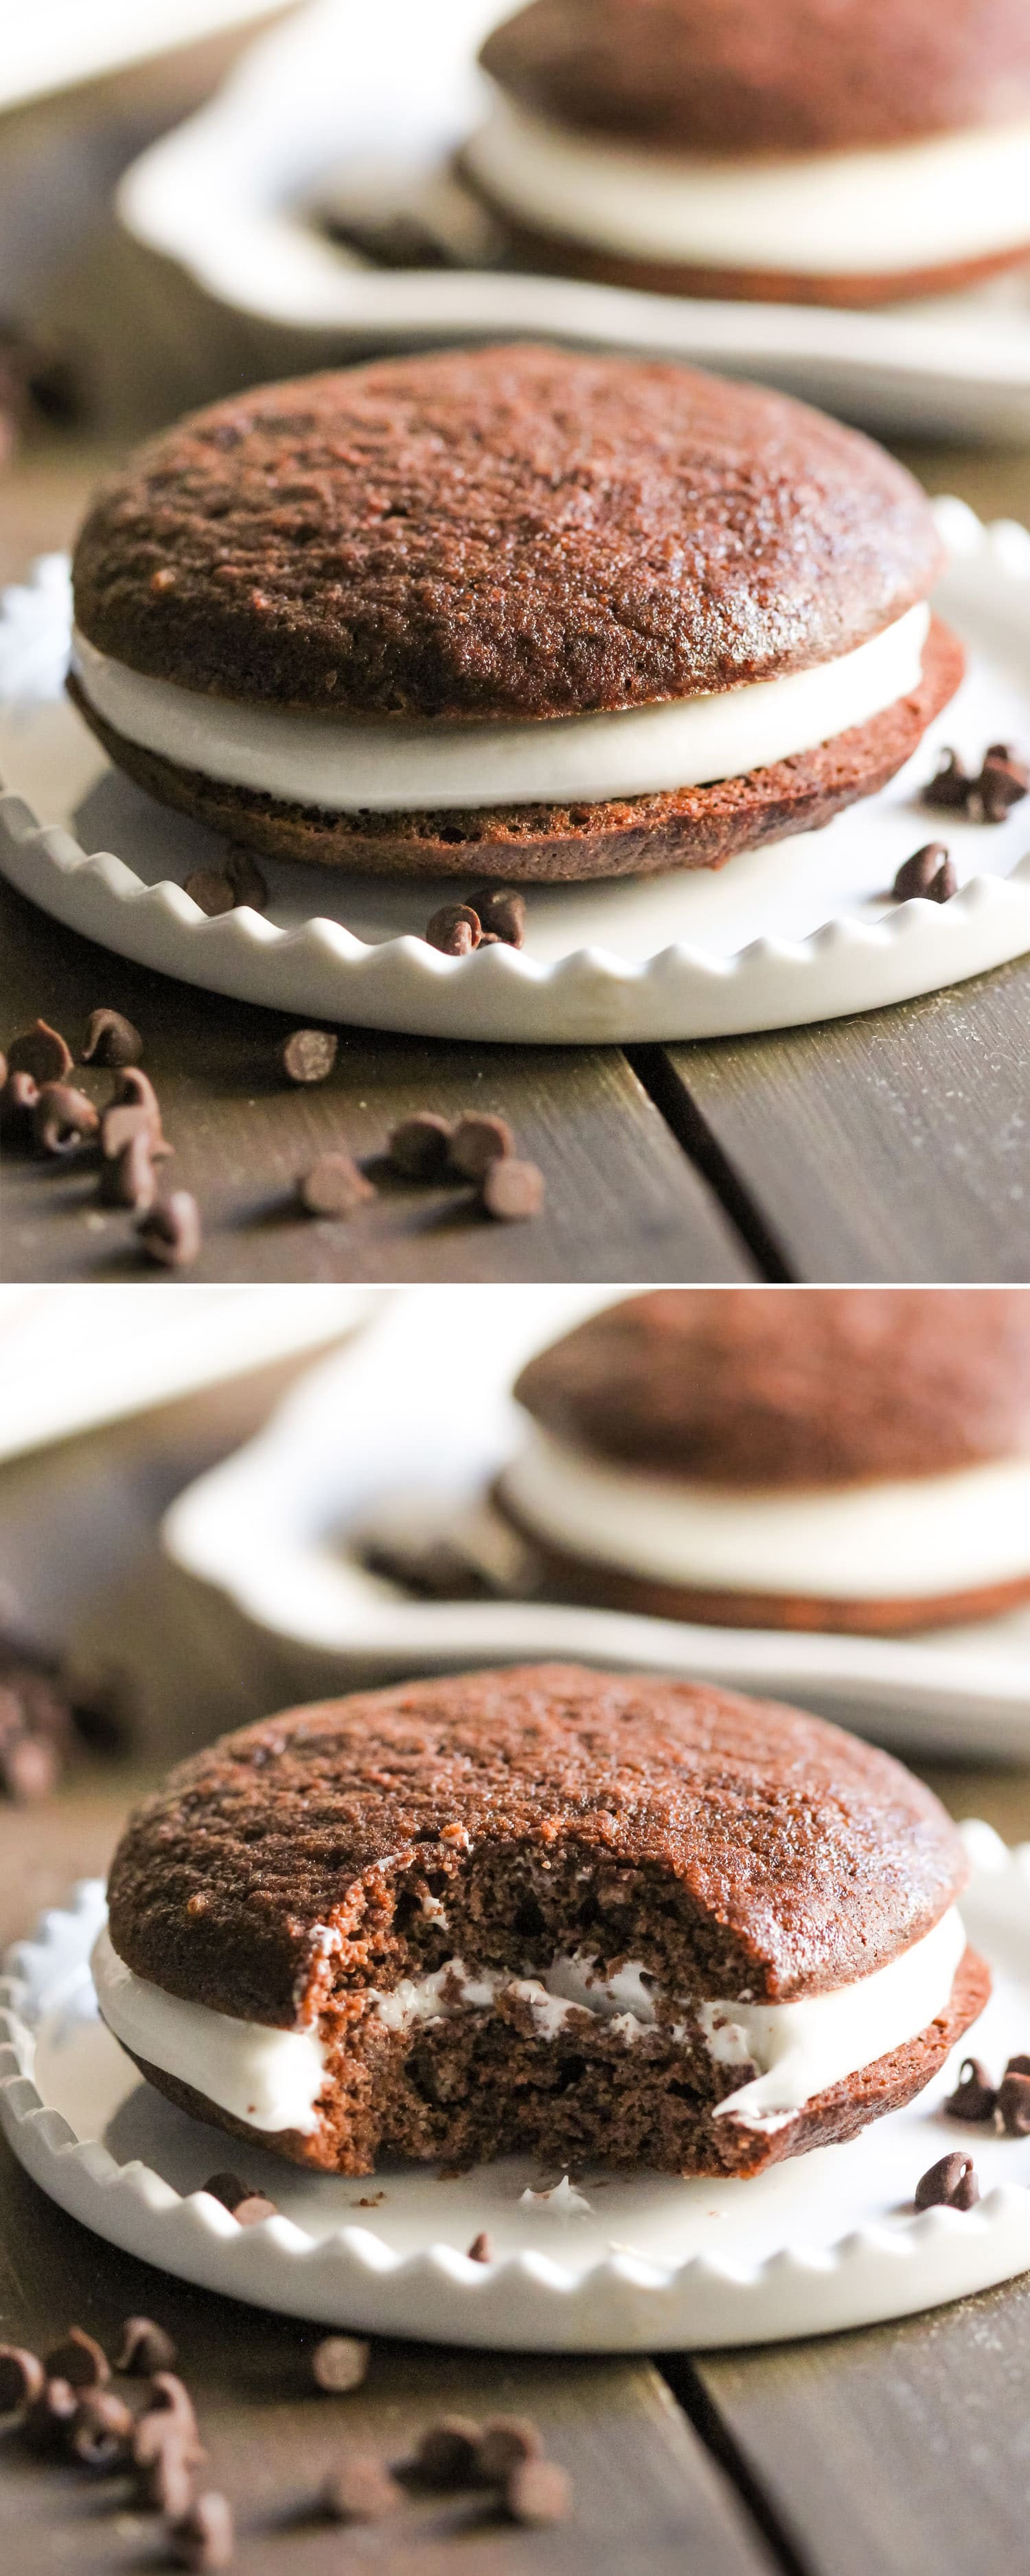 These Healthy Chocolate Whoopie Pies are so soft, light, and fluffy (like a hybrid between a cake and cookie), that you'd never ever know they're sugar free, high protein, gluten free, and dairy free too! Healthy Dessert Recipes with sugar free, low fat, gluten free, and vegan options at the Desserts With Benefits Blog (www.DessertsWithBenefits.com)